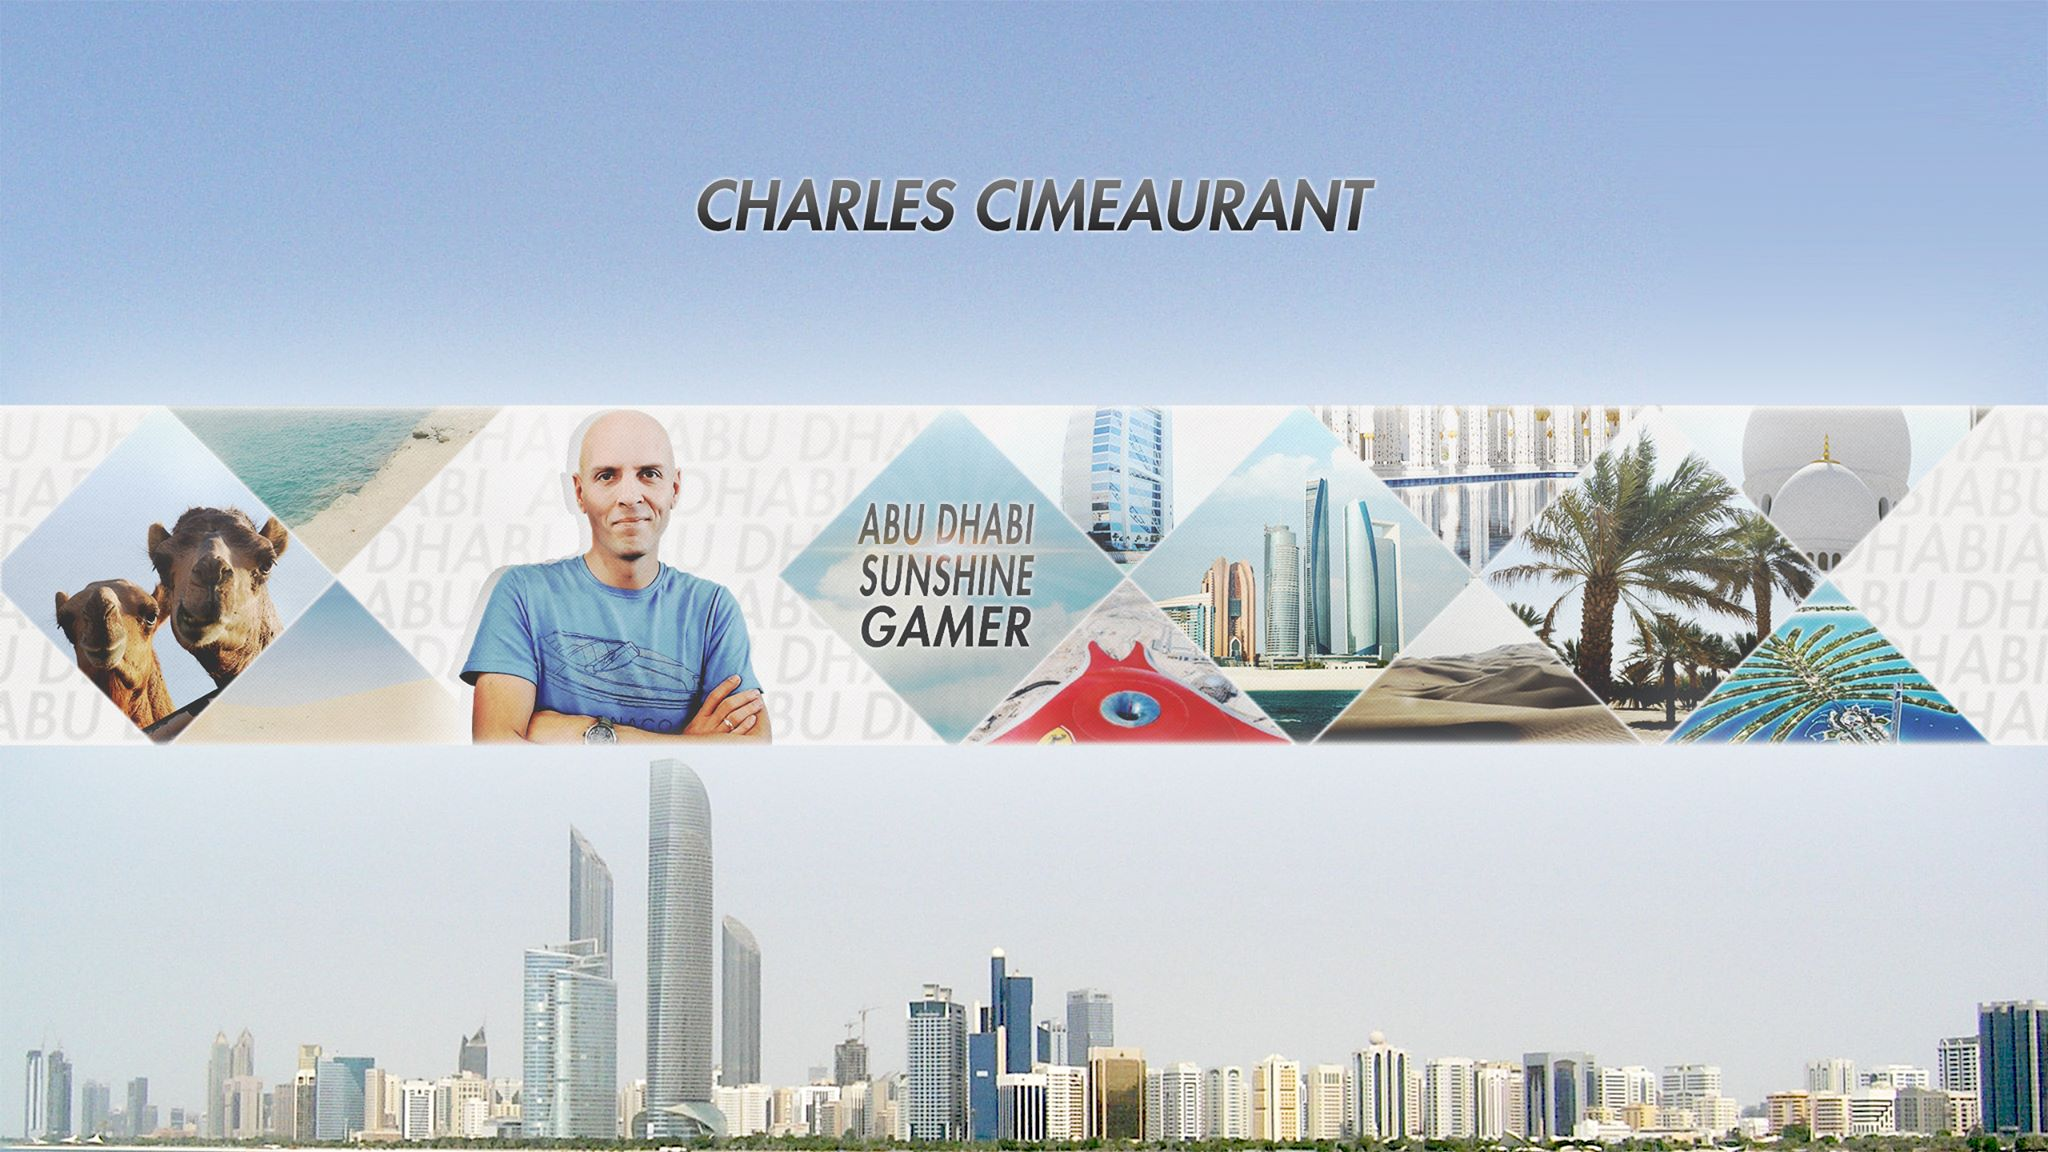 Streamerportrait: Charles Cimeaurant